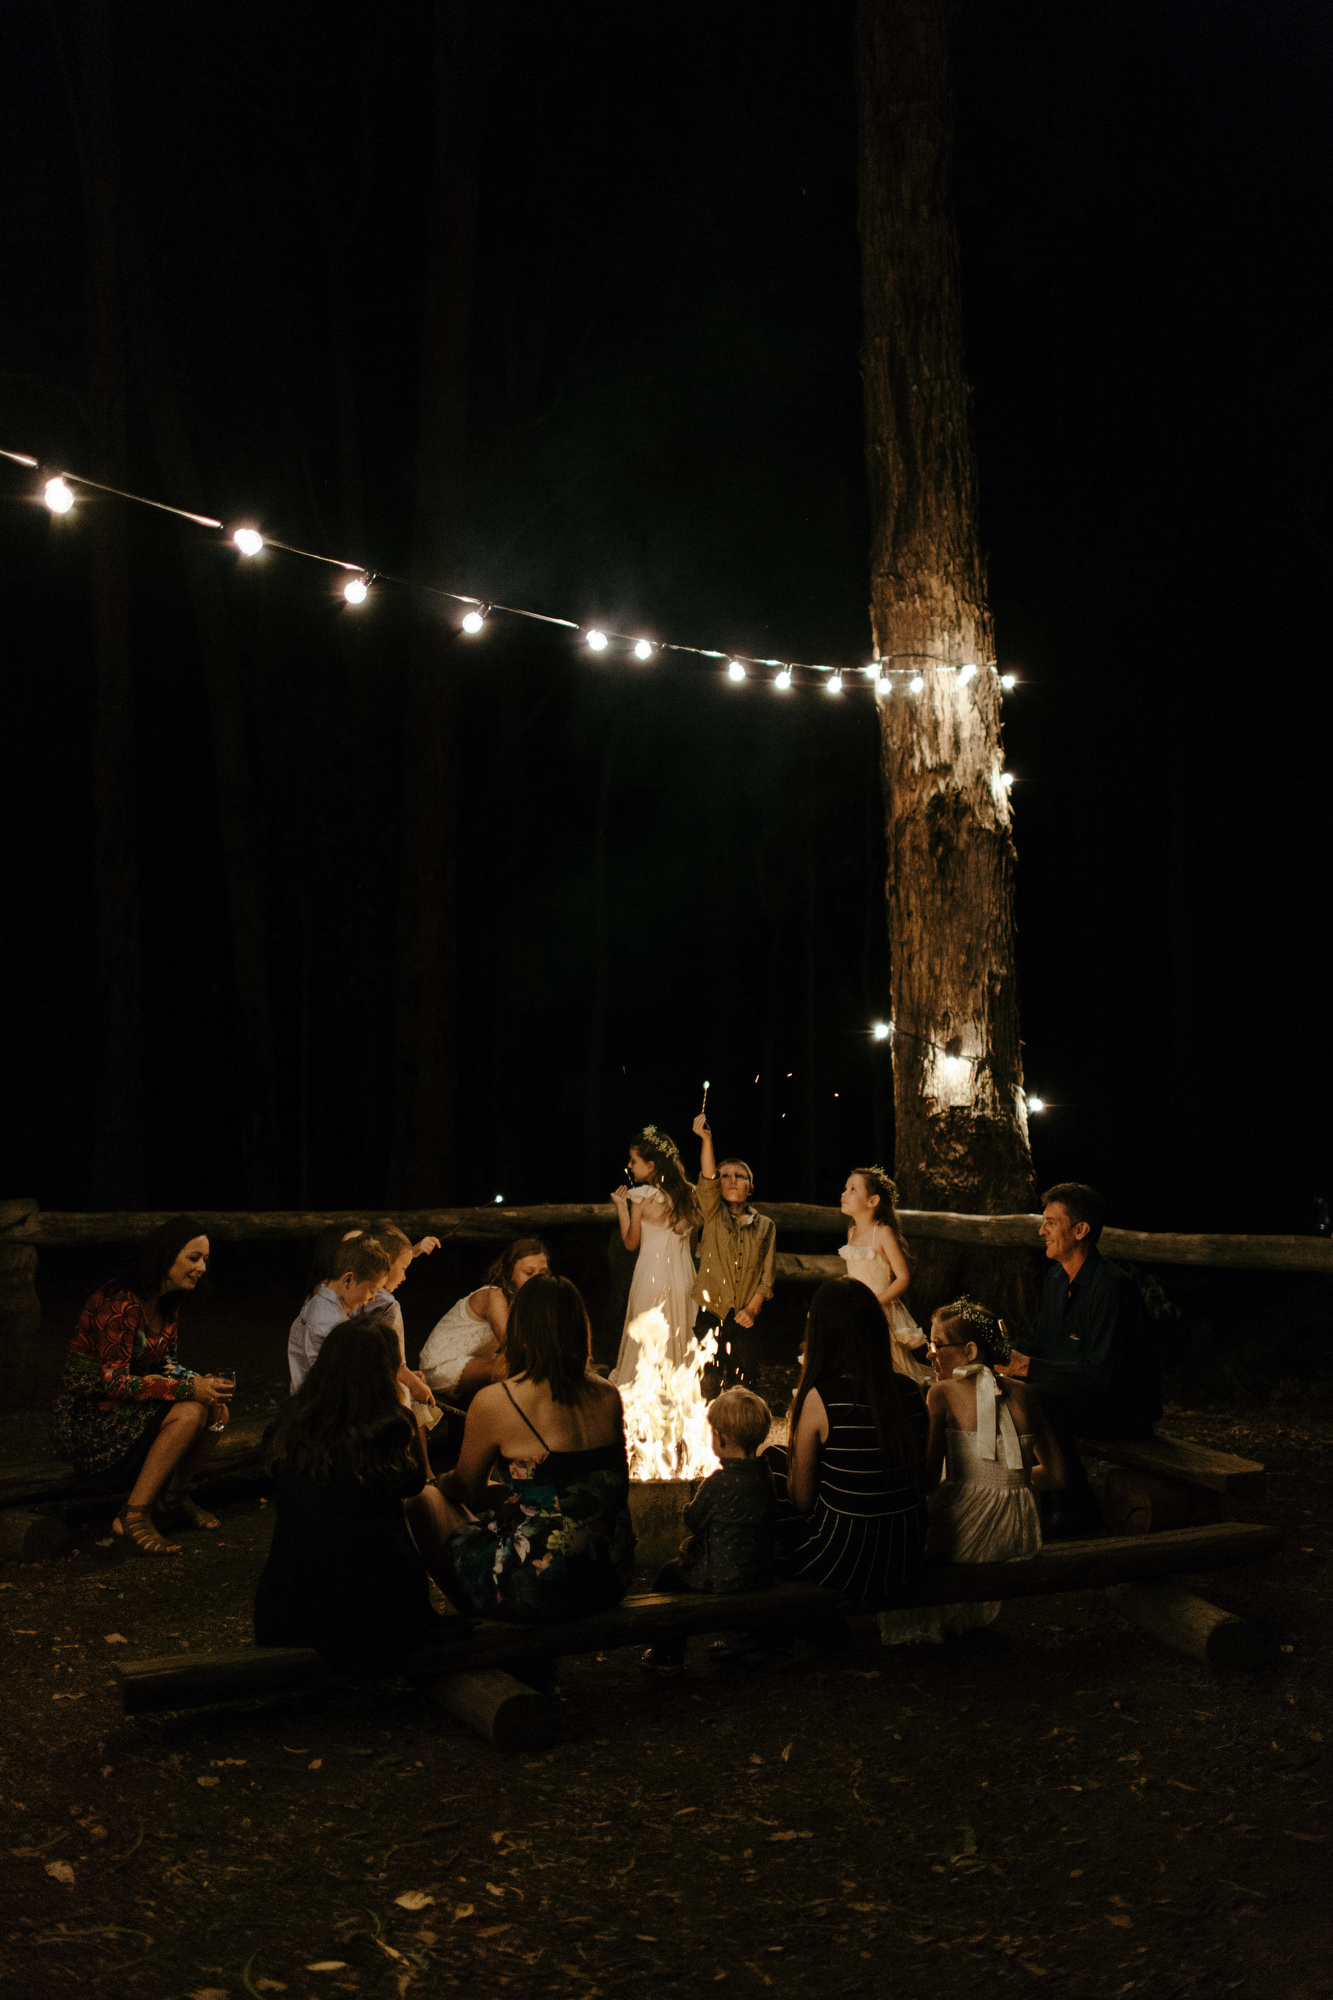 CARTER-ROSE-PHOTOGRAPHY-NICHOLAS-WEDDING-NANGA-BUSH-CAMP911.JPG